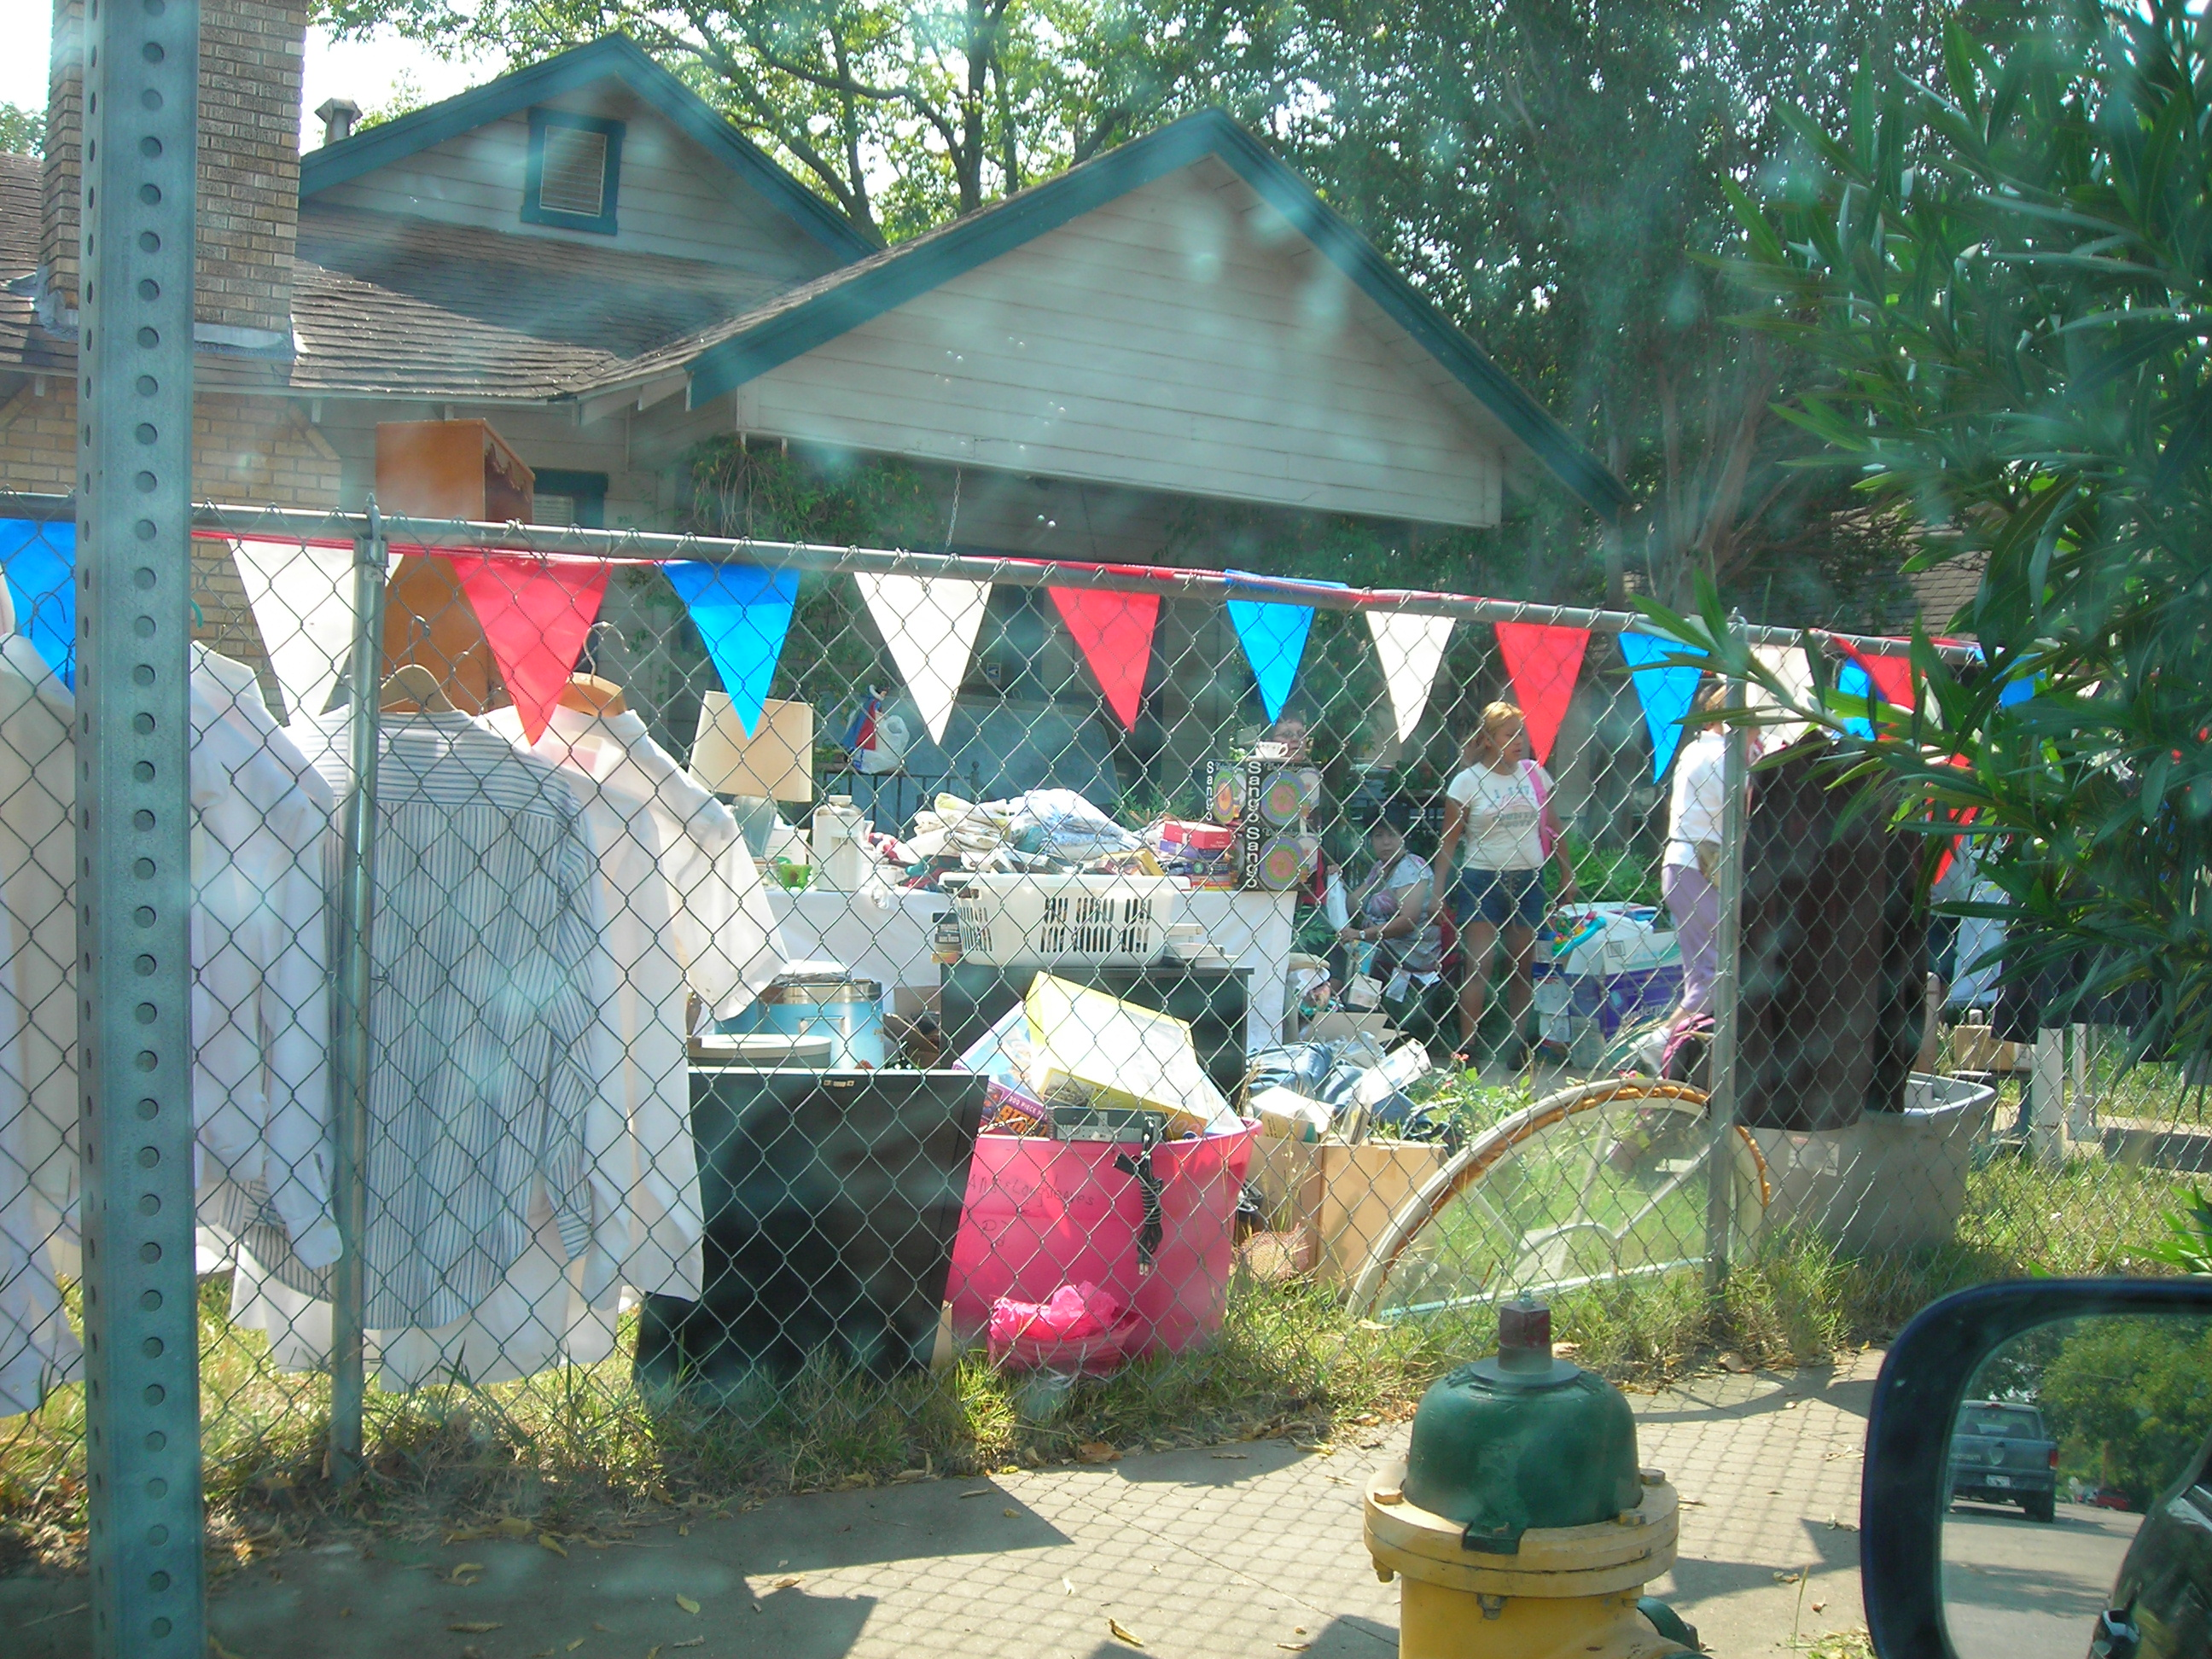 chigger-infested yard sale